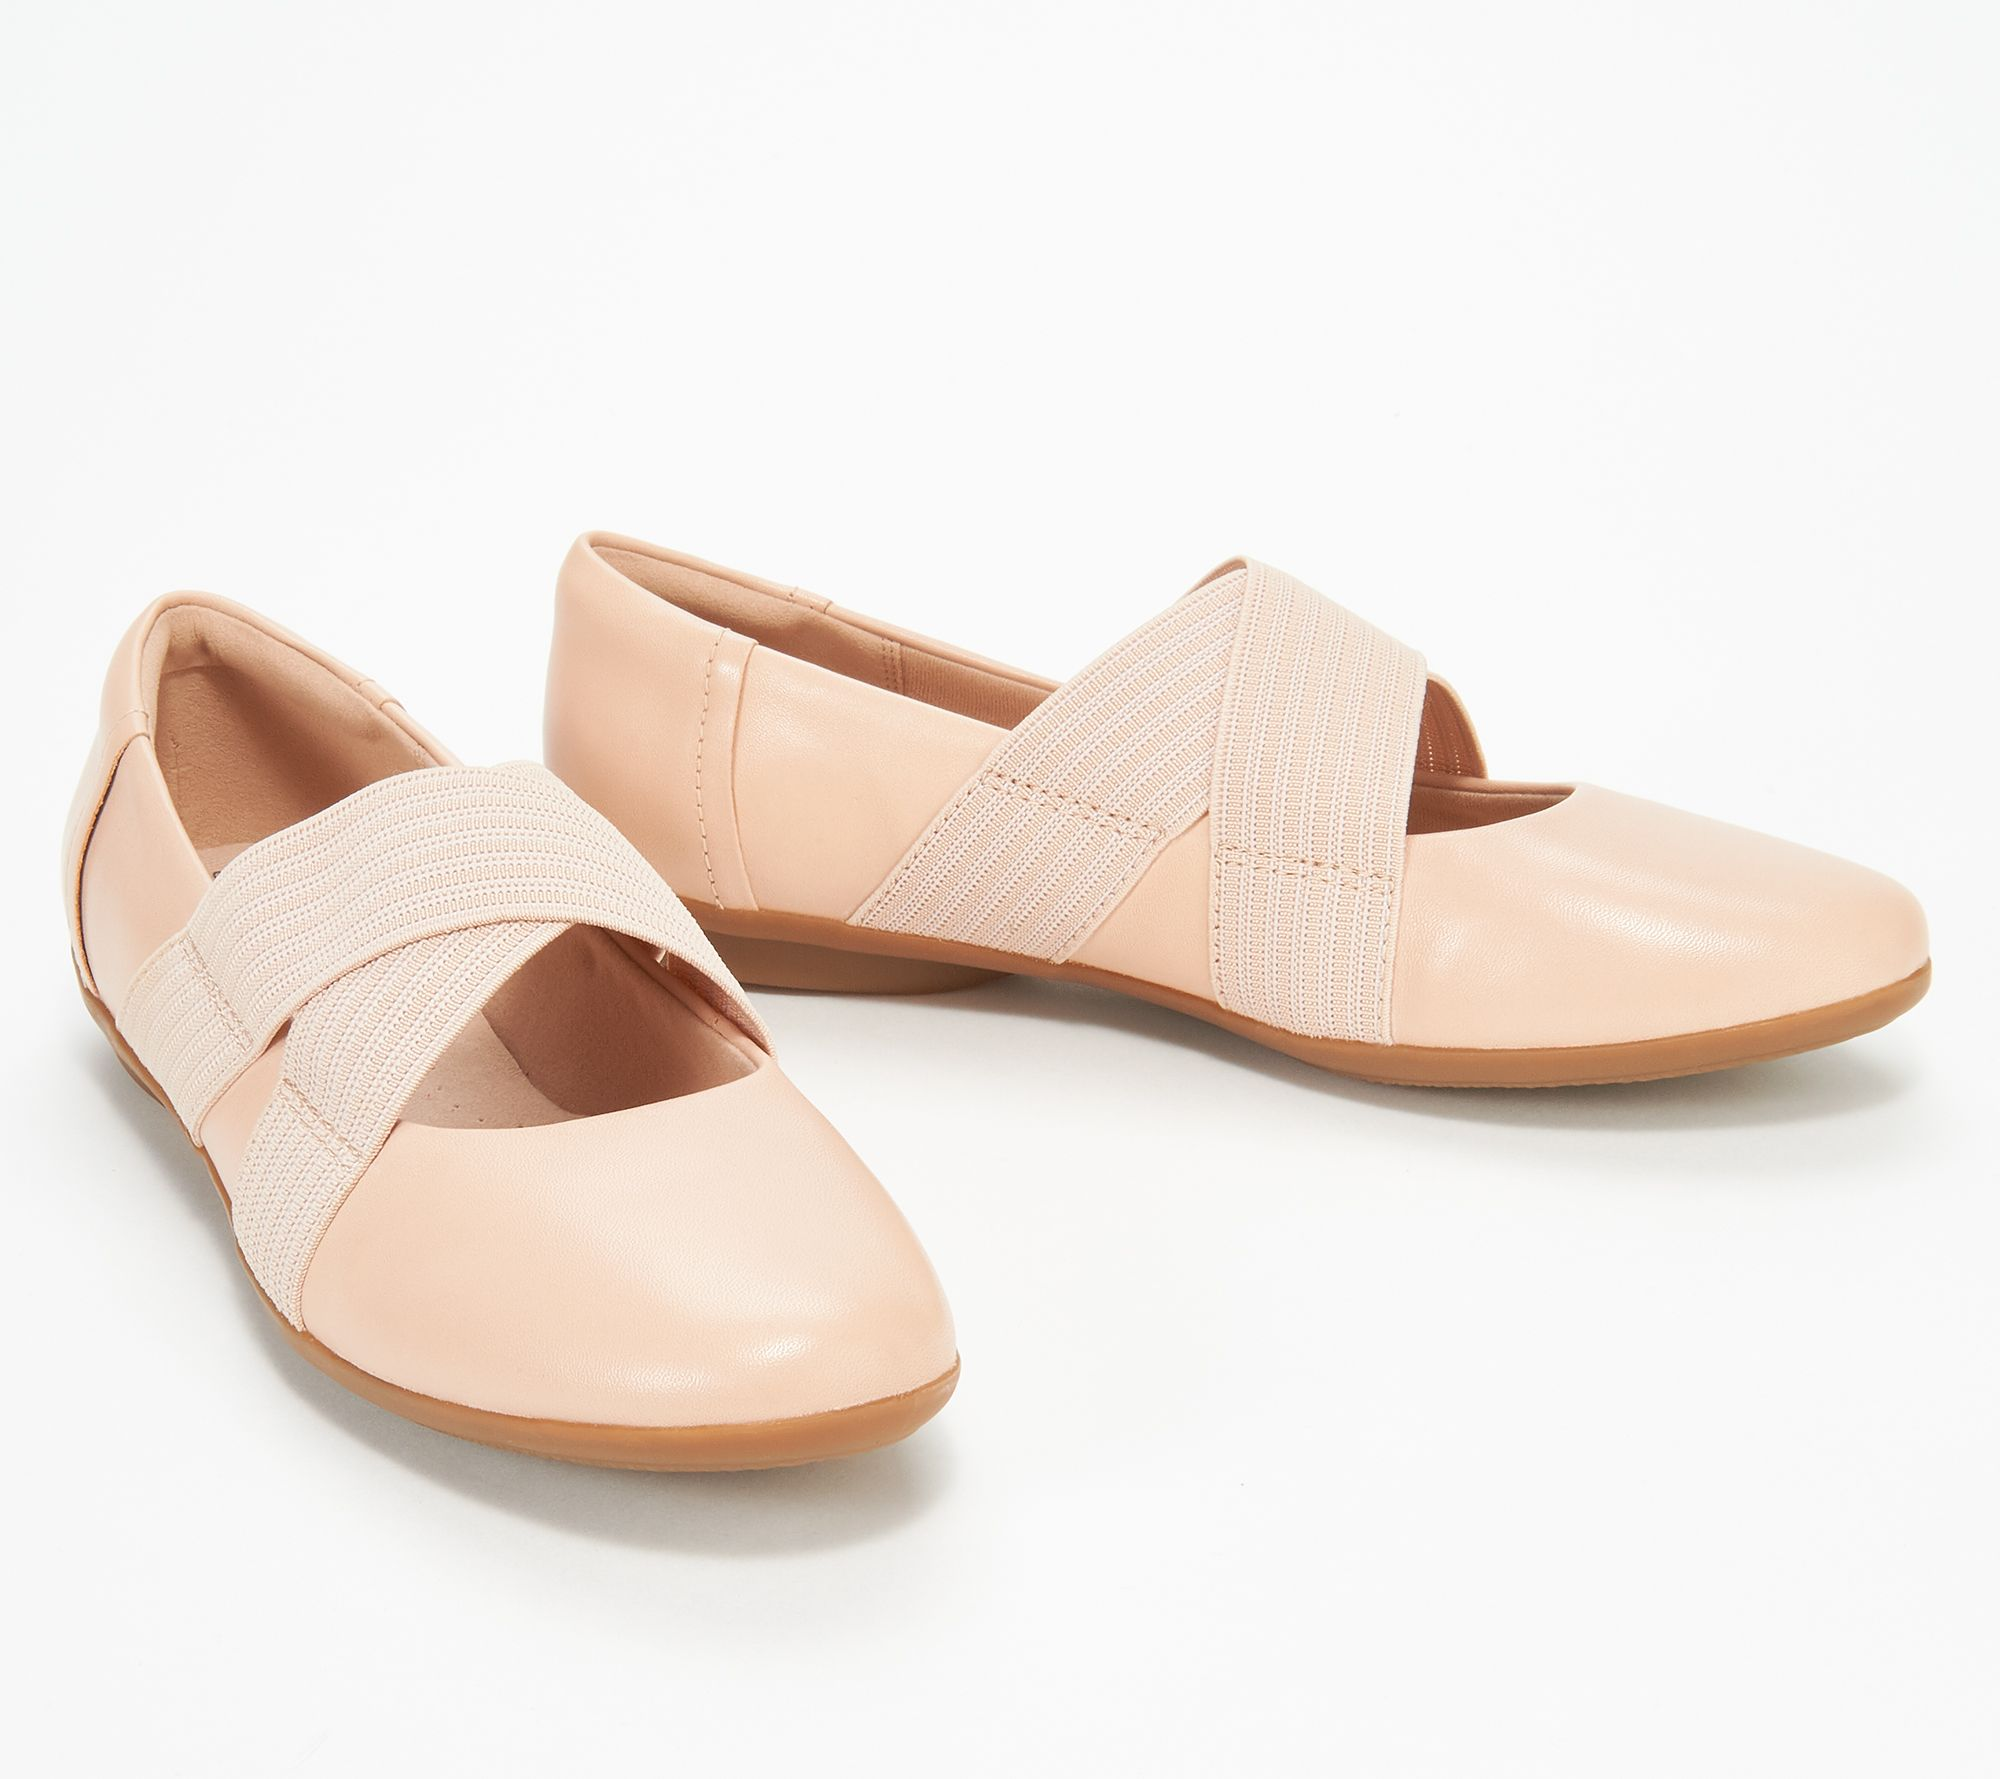 0600b3c91ad7 Clarks Collection Leather Cross- Strap Flats - Gracelin Shea - Page 1 —  QVC.com